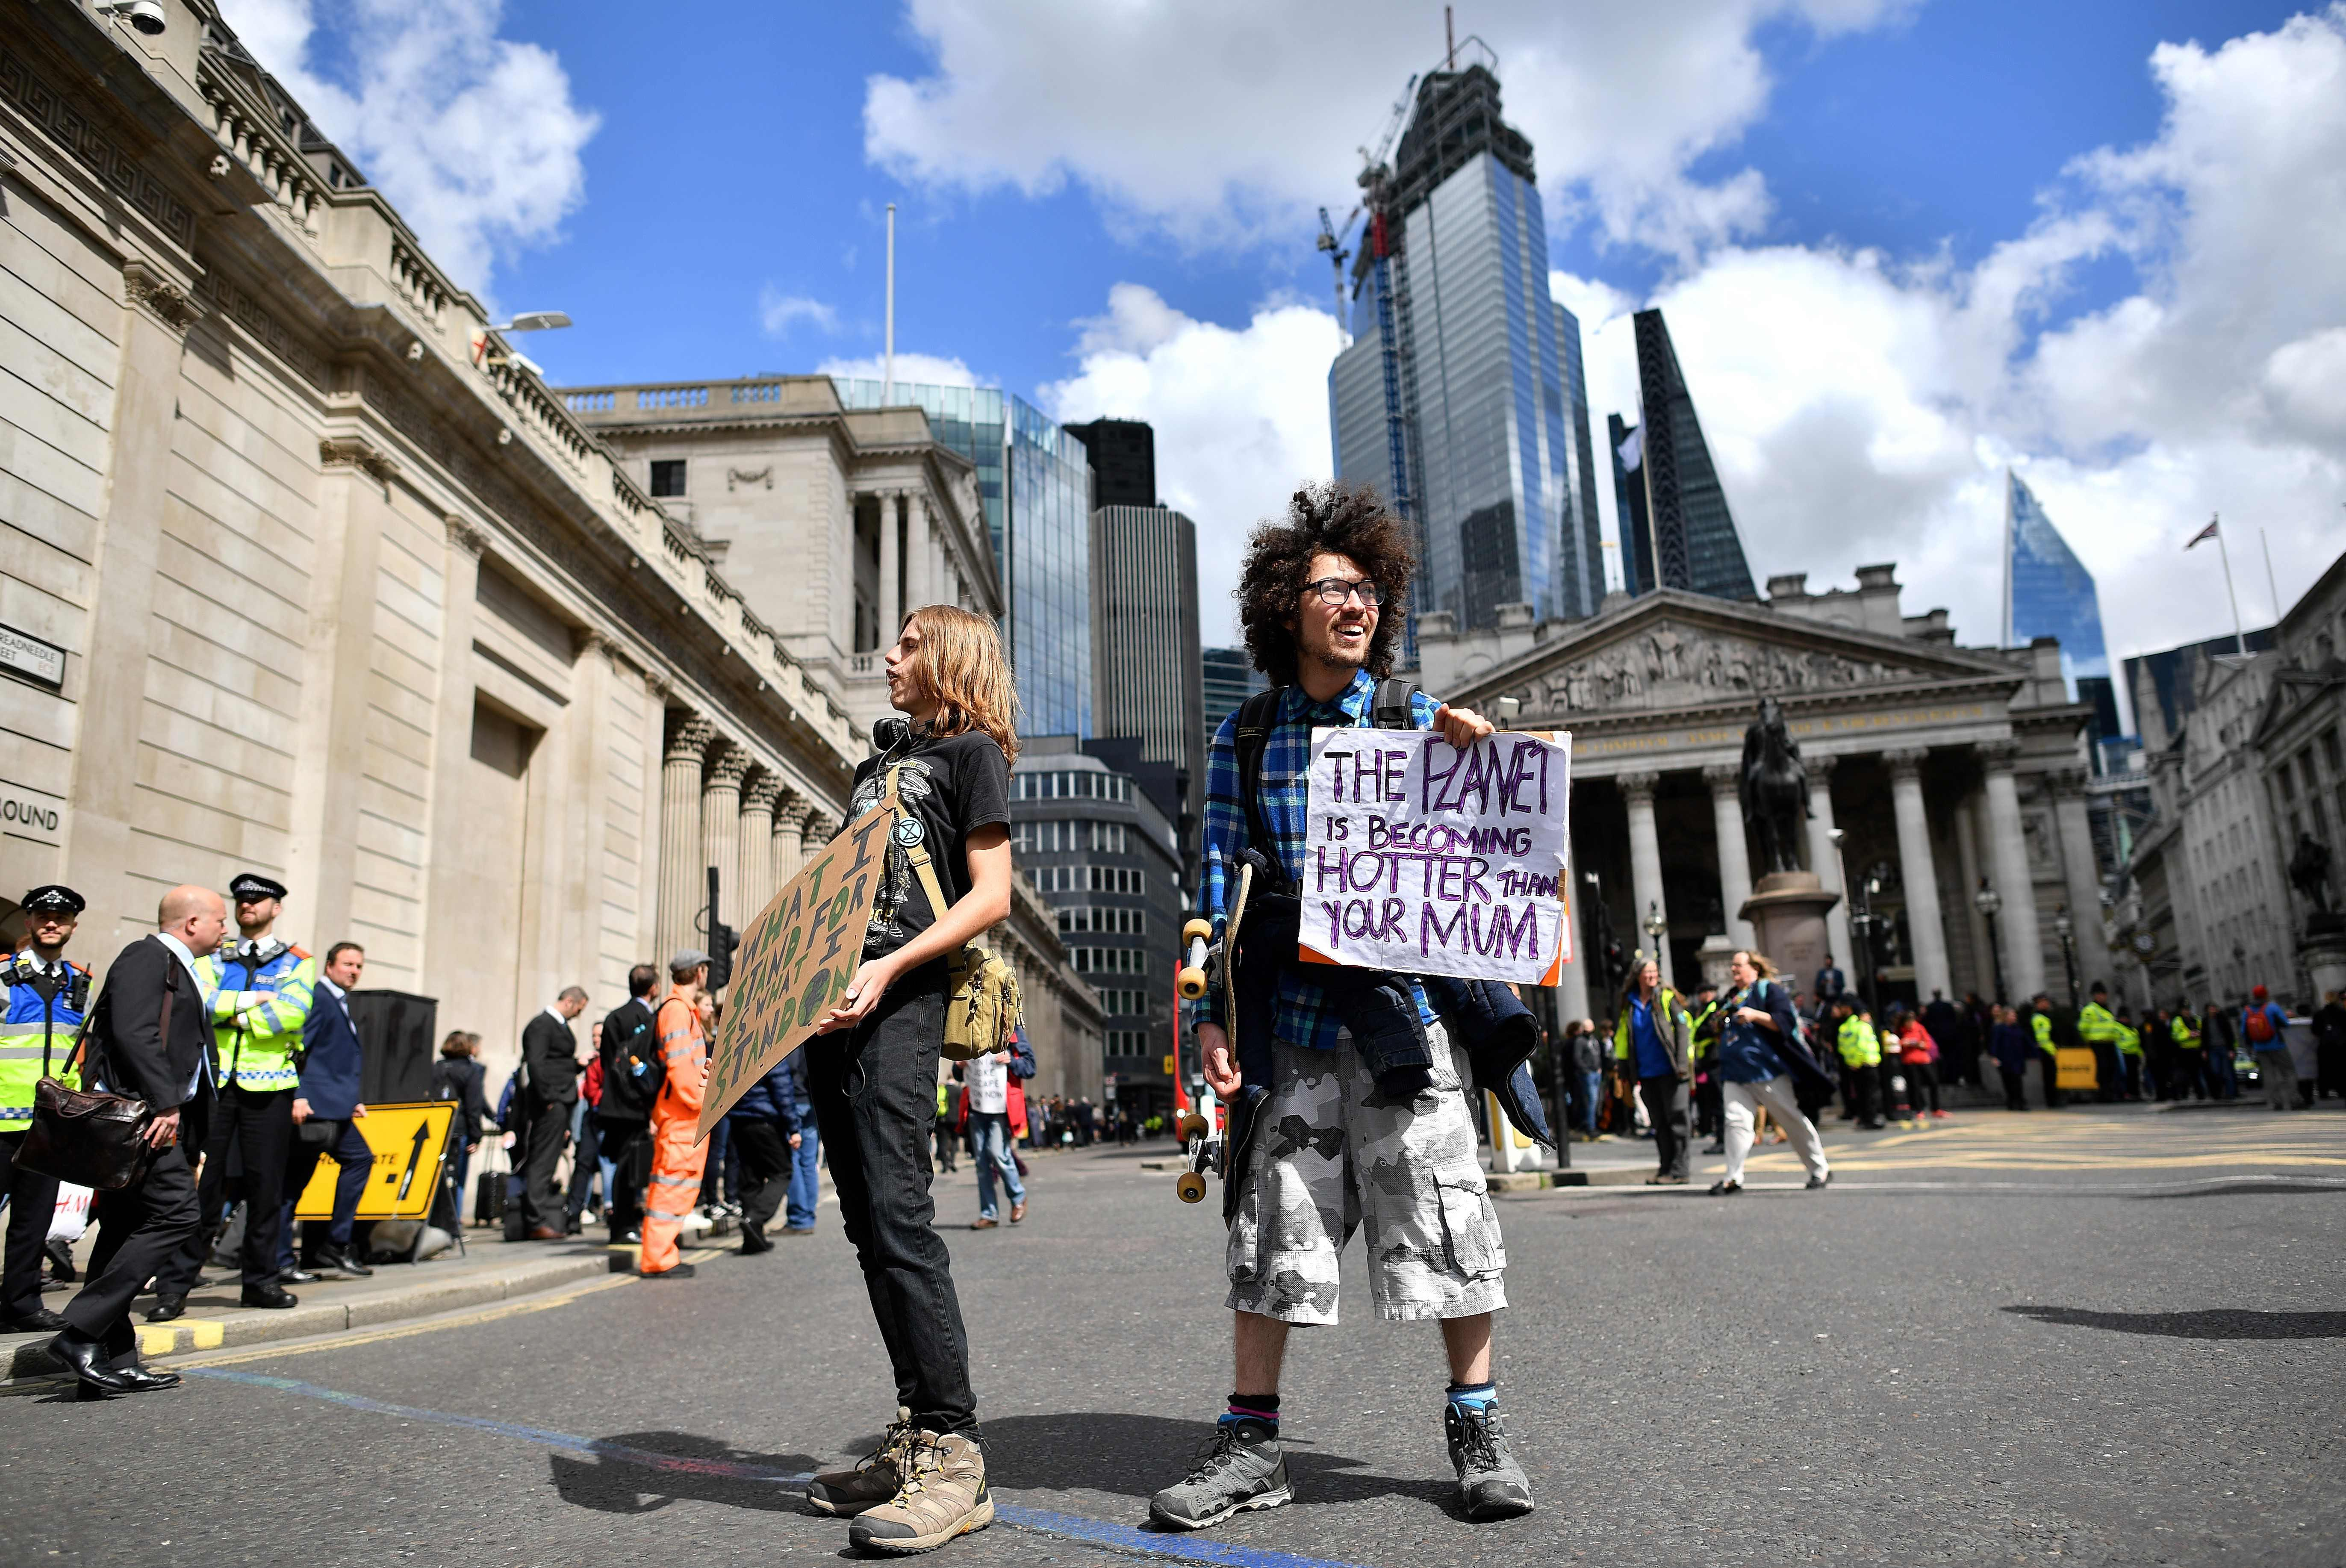 Extinction Rebellion protesters stop traffic in City of London